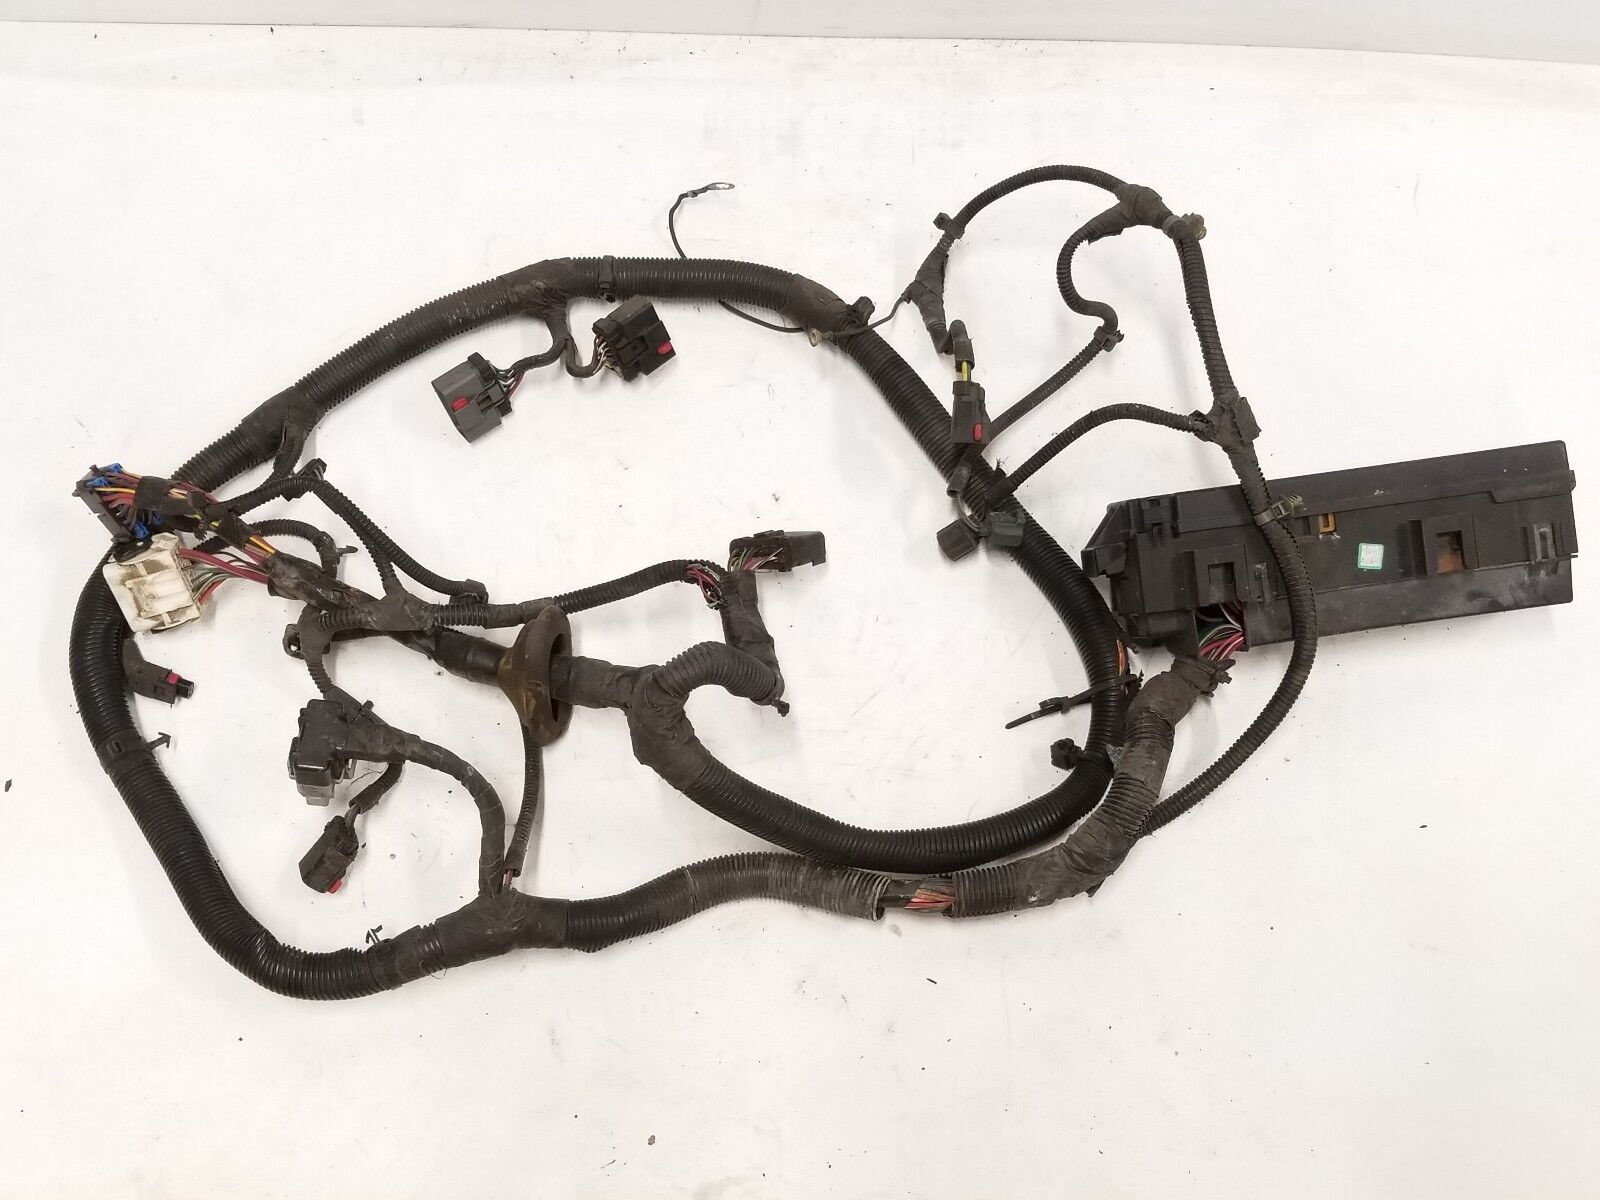 Used 2004 Jeep Wrangler Engines And Components For Sale Relay Wiring Tj Underhood Firewall Fusebox Harness 24l 04t